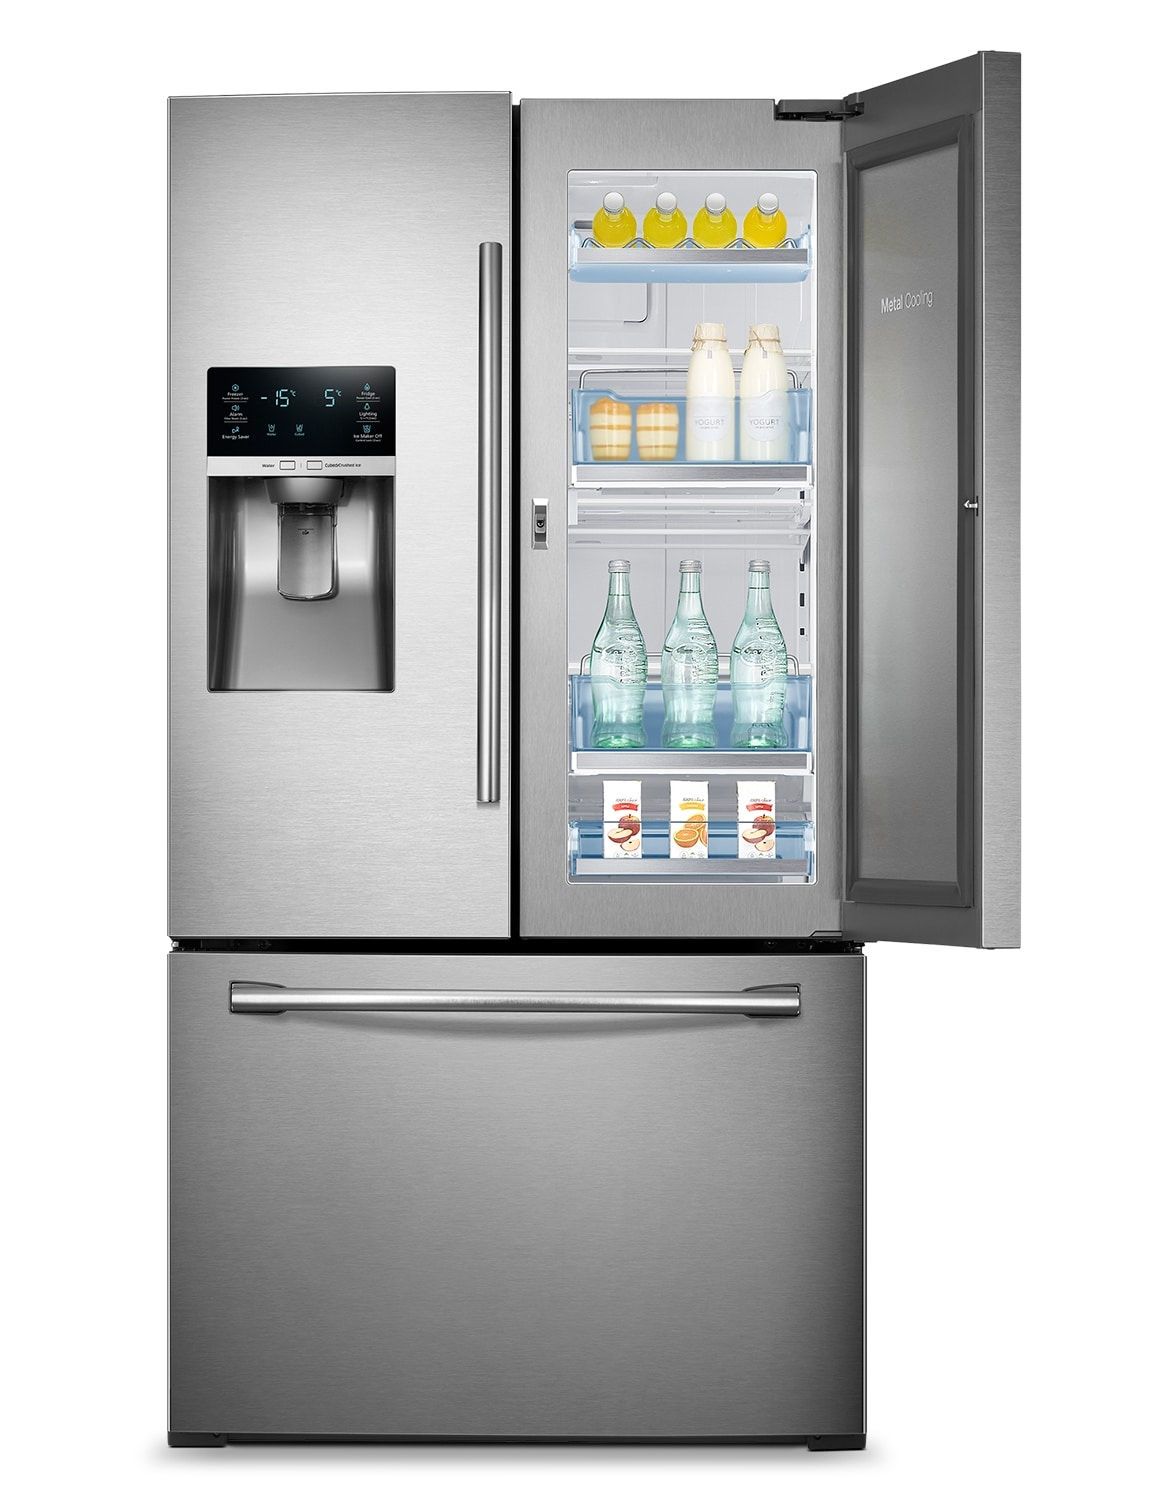 Samsung Stainless Steel French Door Refrigerator (27.8 Cu. Ft.) - RF28HDEDBSR